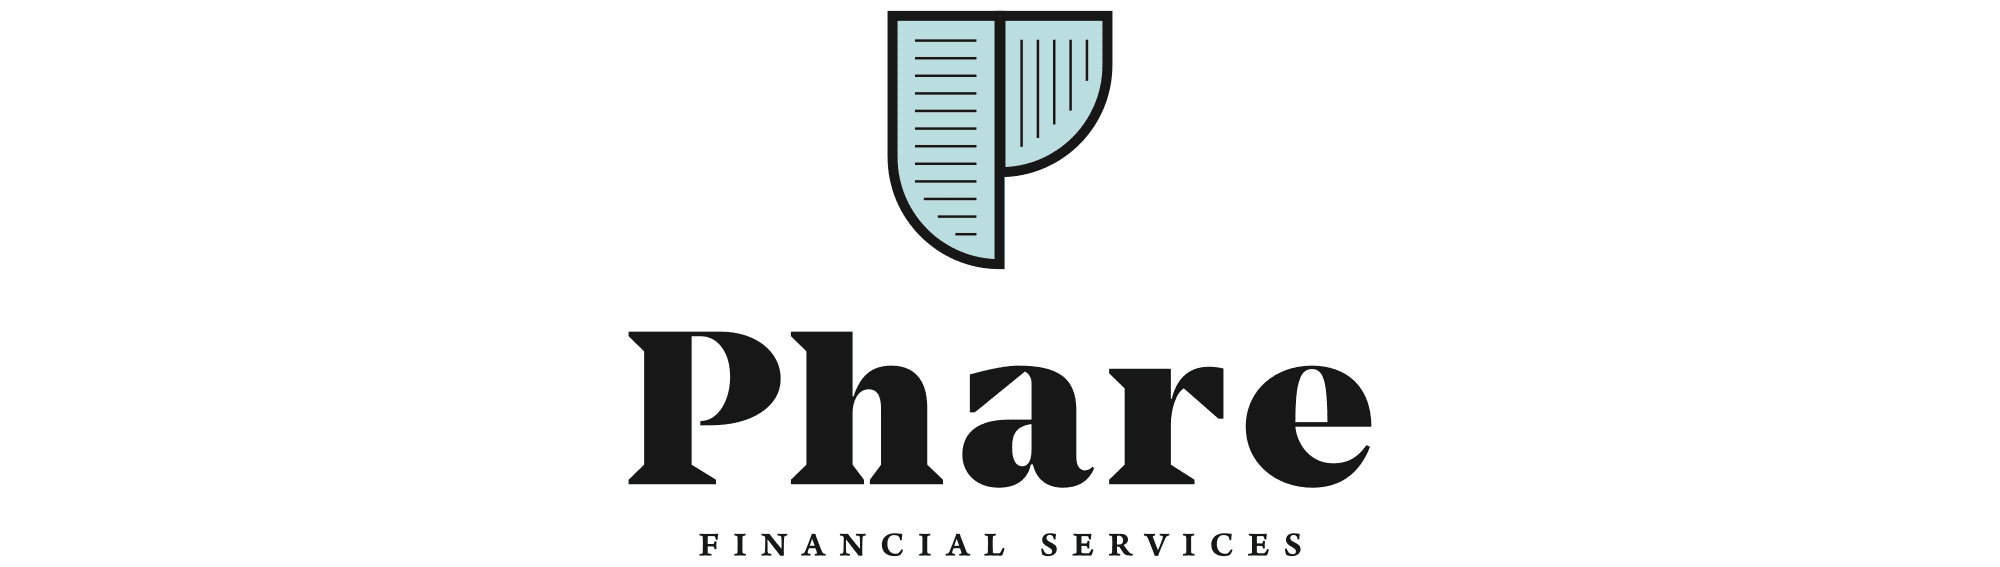 Phare Financial Services